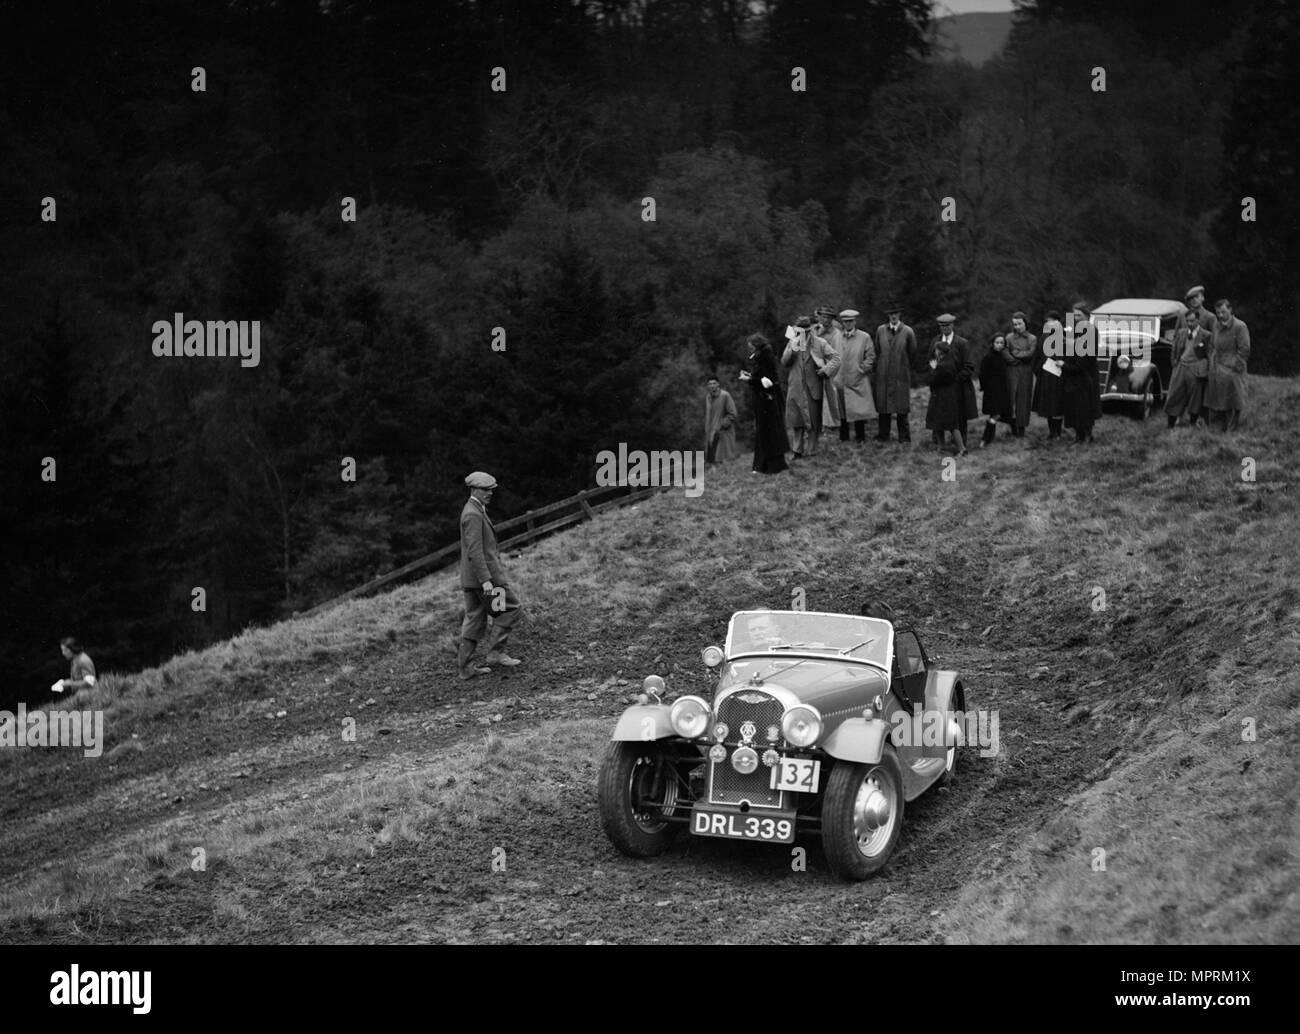 Morgan 4/4 of RD Harris competing in the MCC Edinburgh Trial, Roxburghshire, Scotland, 1938. Artist: Bill Brunell. - Stock Image